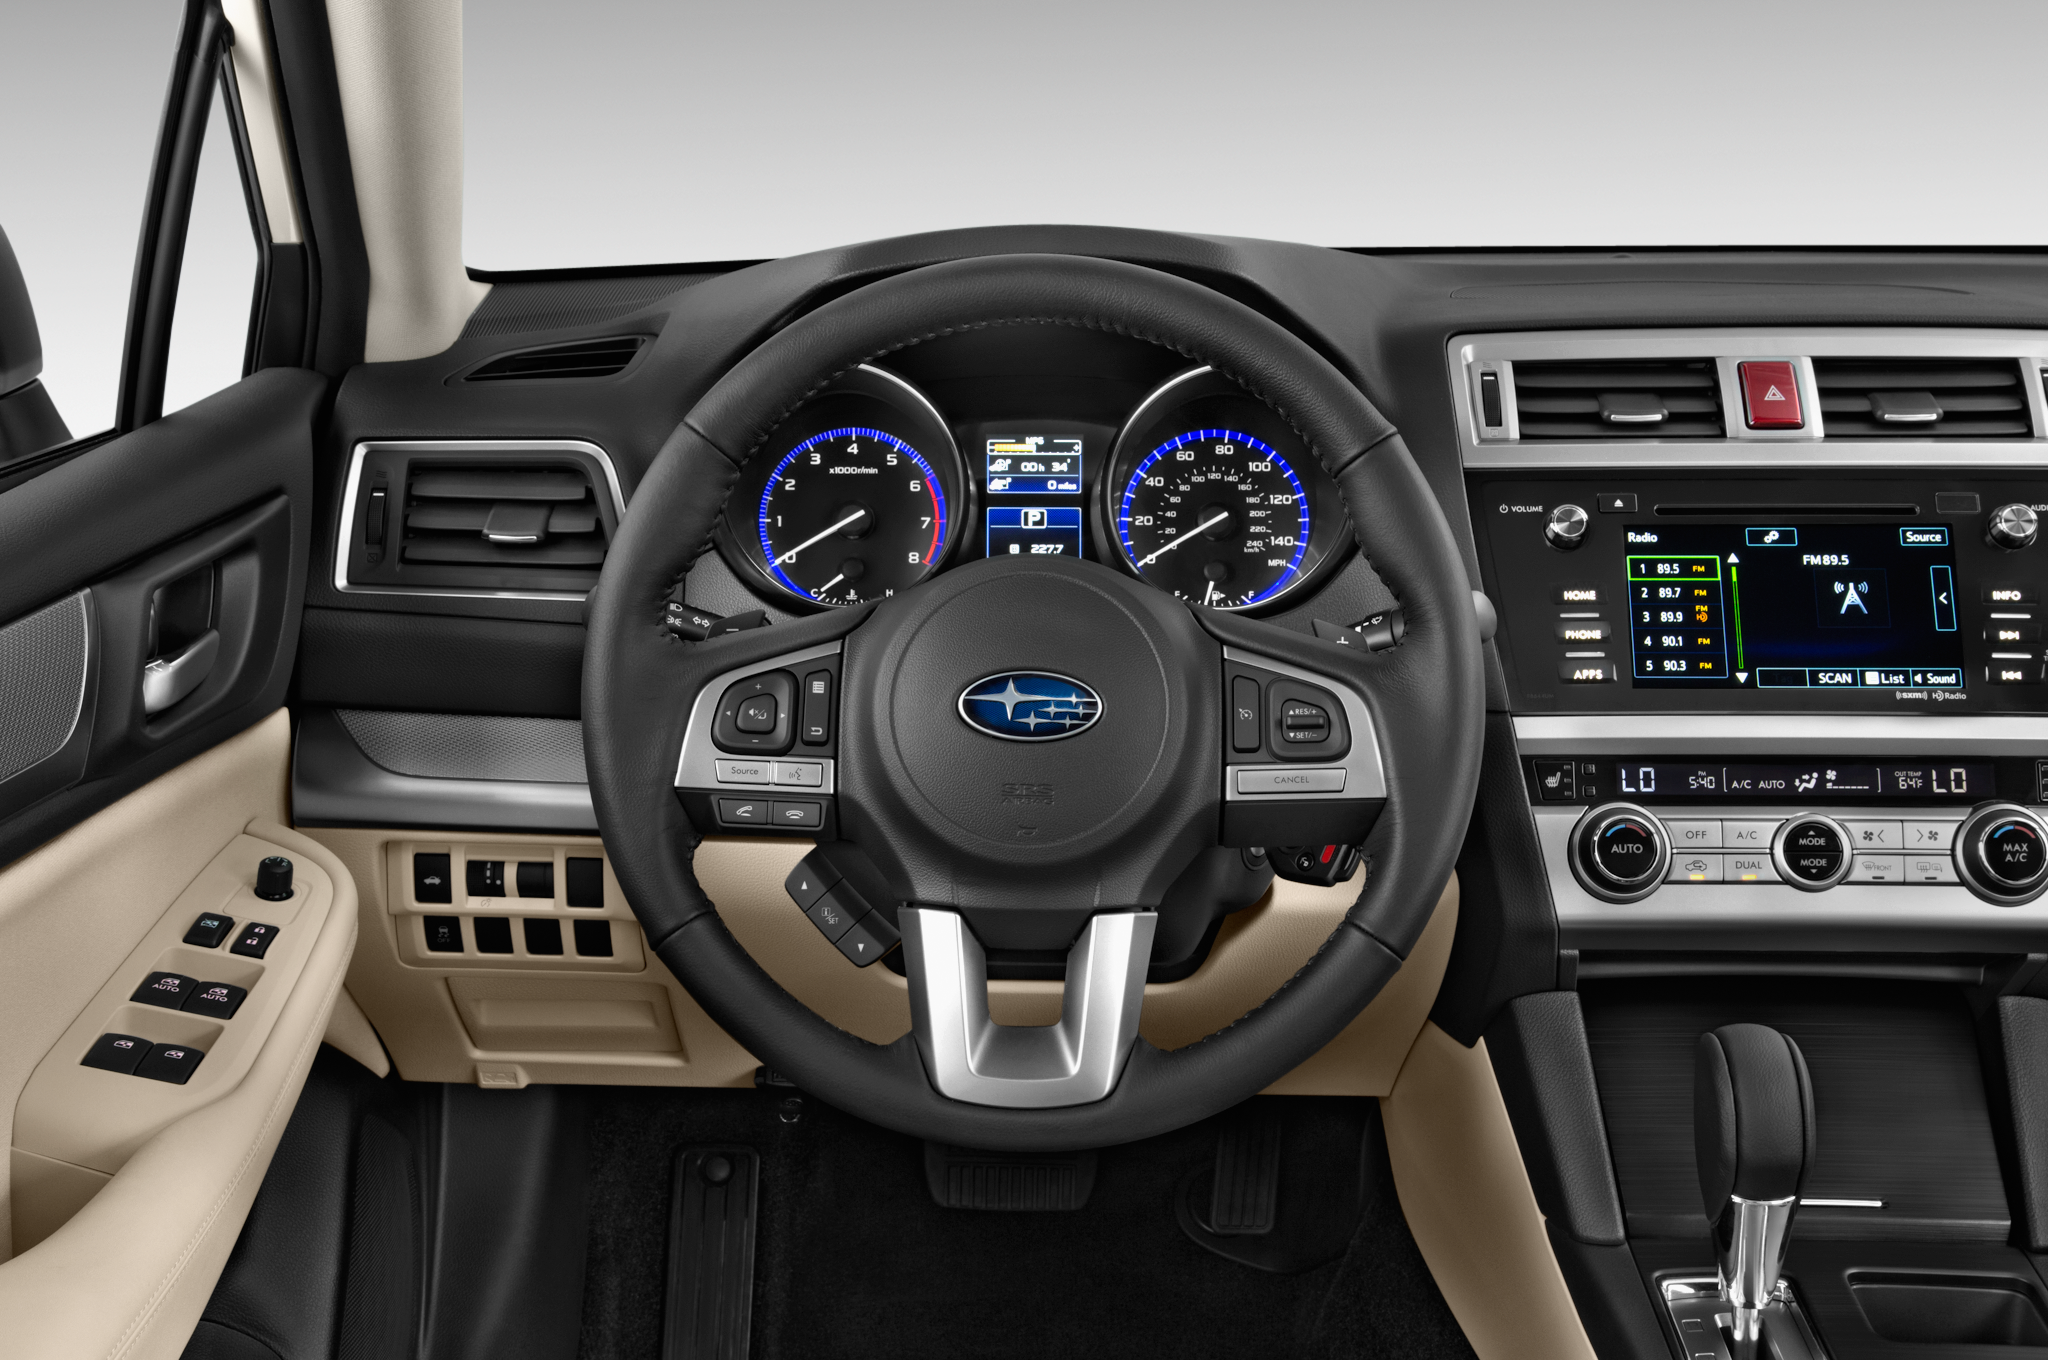 2009 subaru legacy concept to debut latest news features and 2228 vanachro Image collections